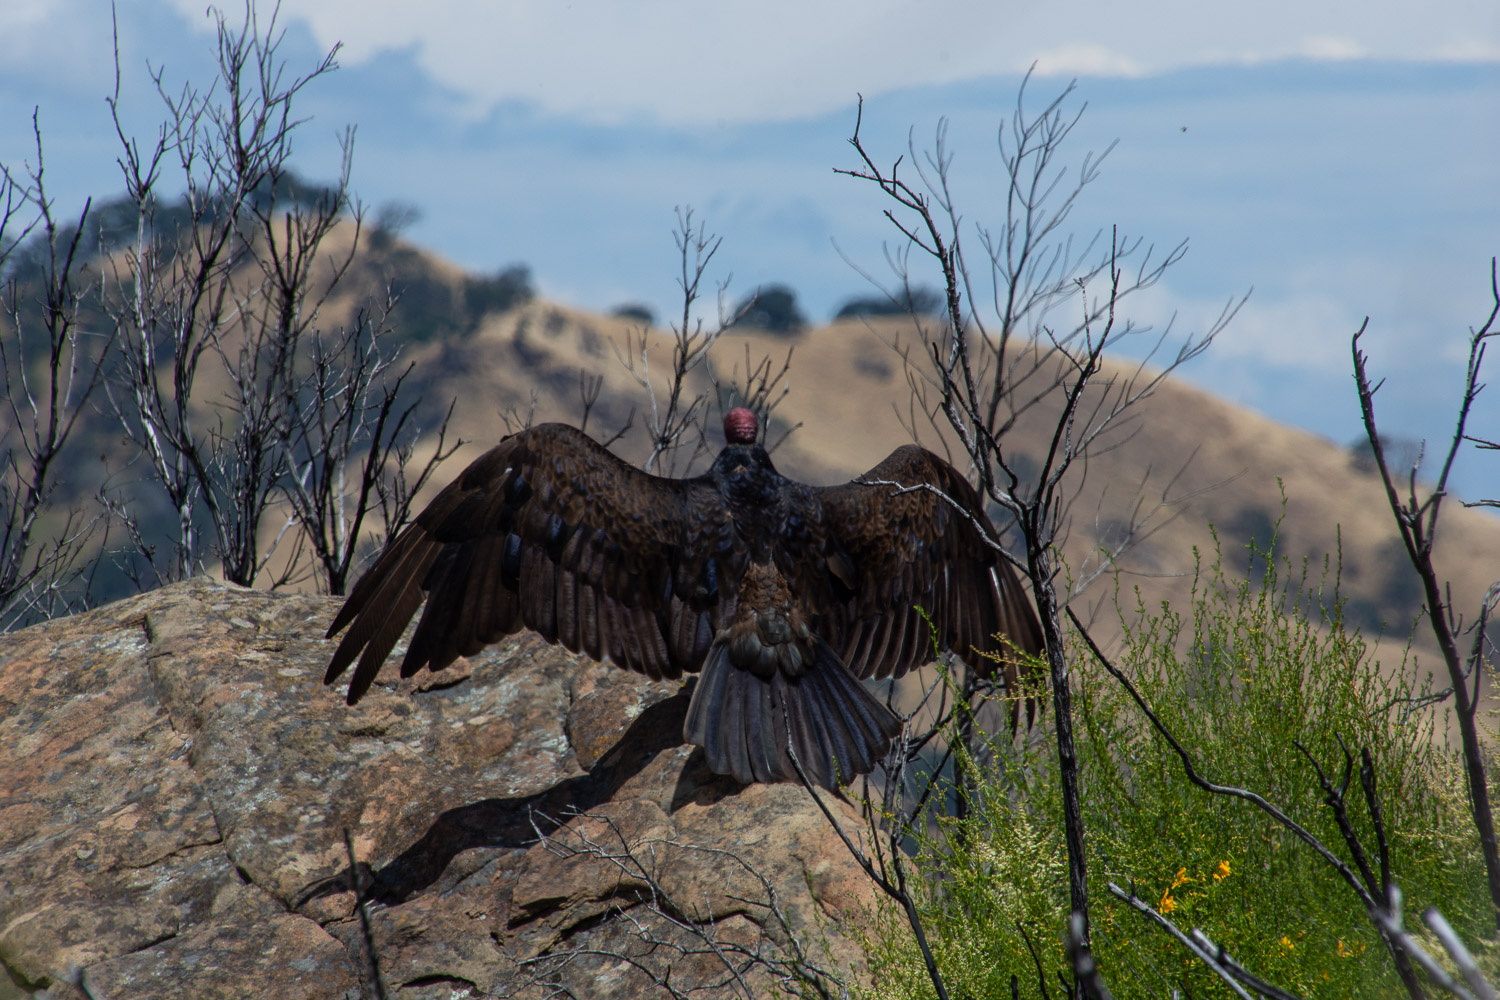 Turkey vulture at Stebbins Cold Canyon.